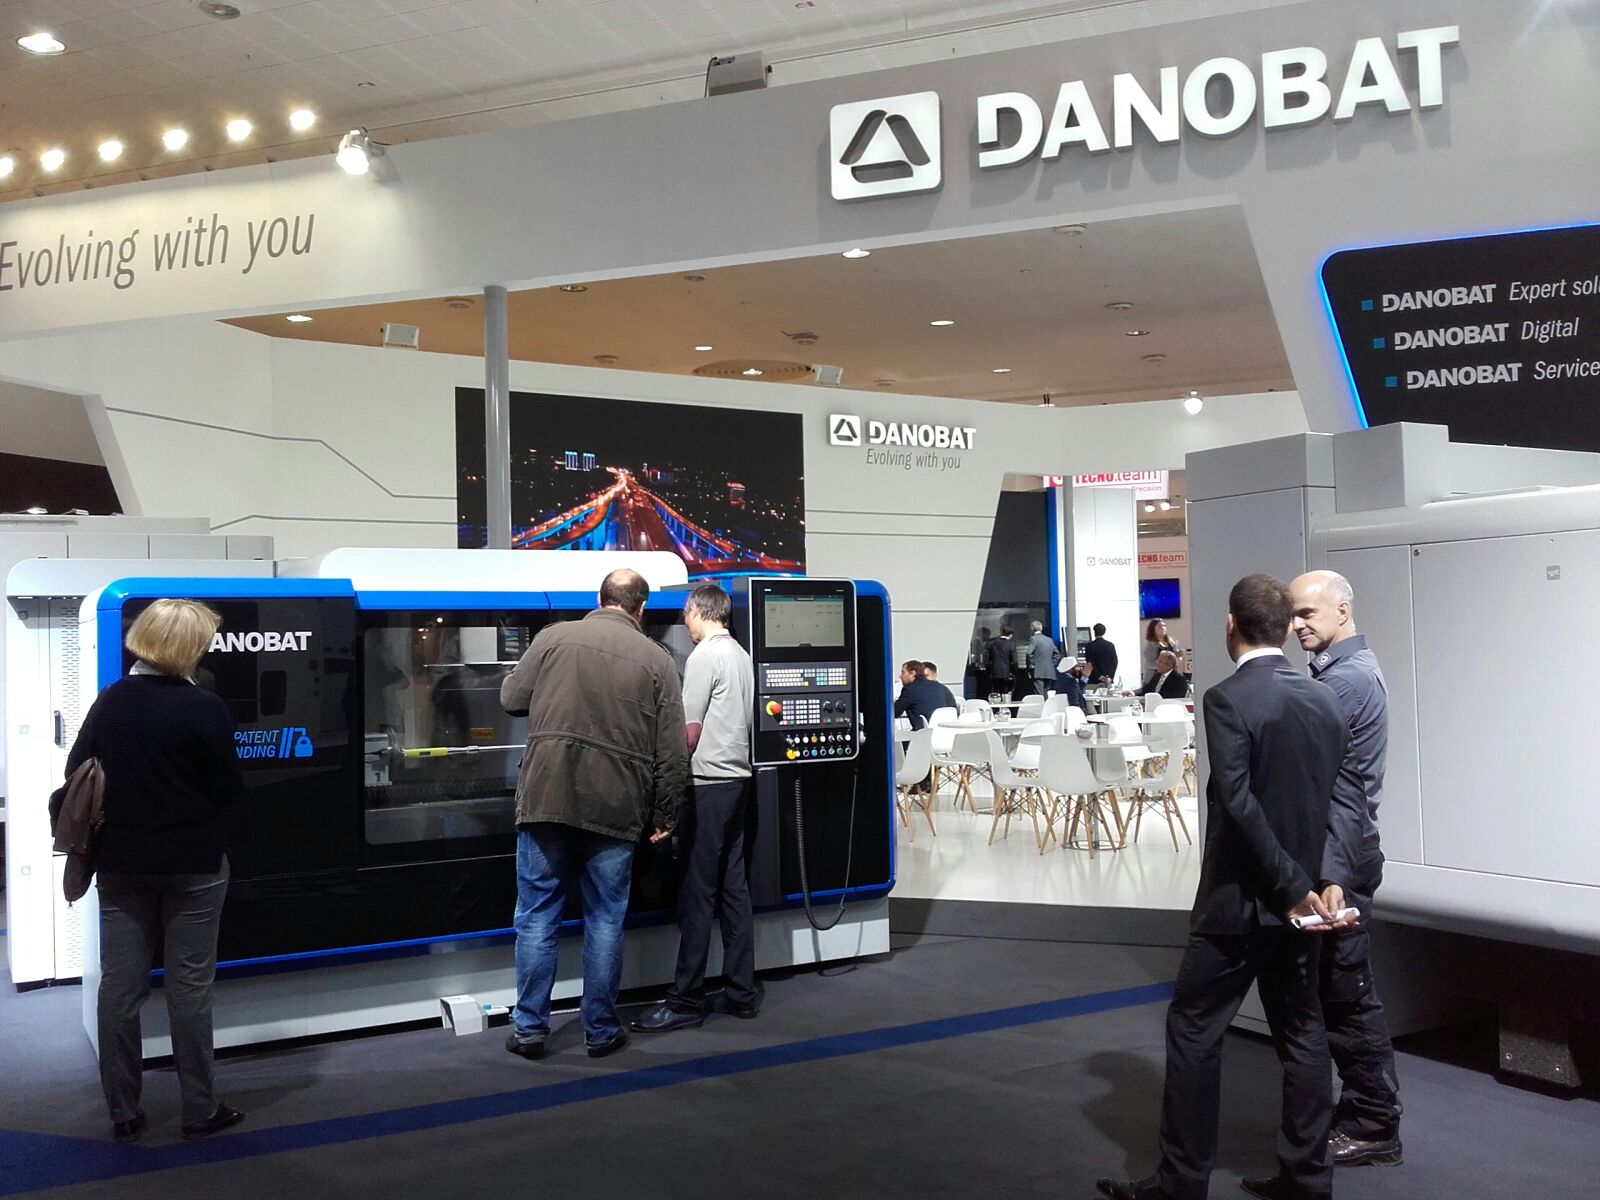 DANOBAT showcases its focus on industrial digitalisation and the development of advanced manufacturing solutions at EMO in Hannover